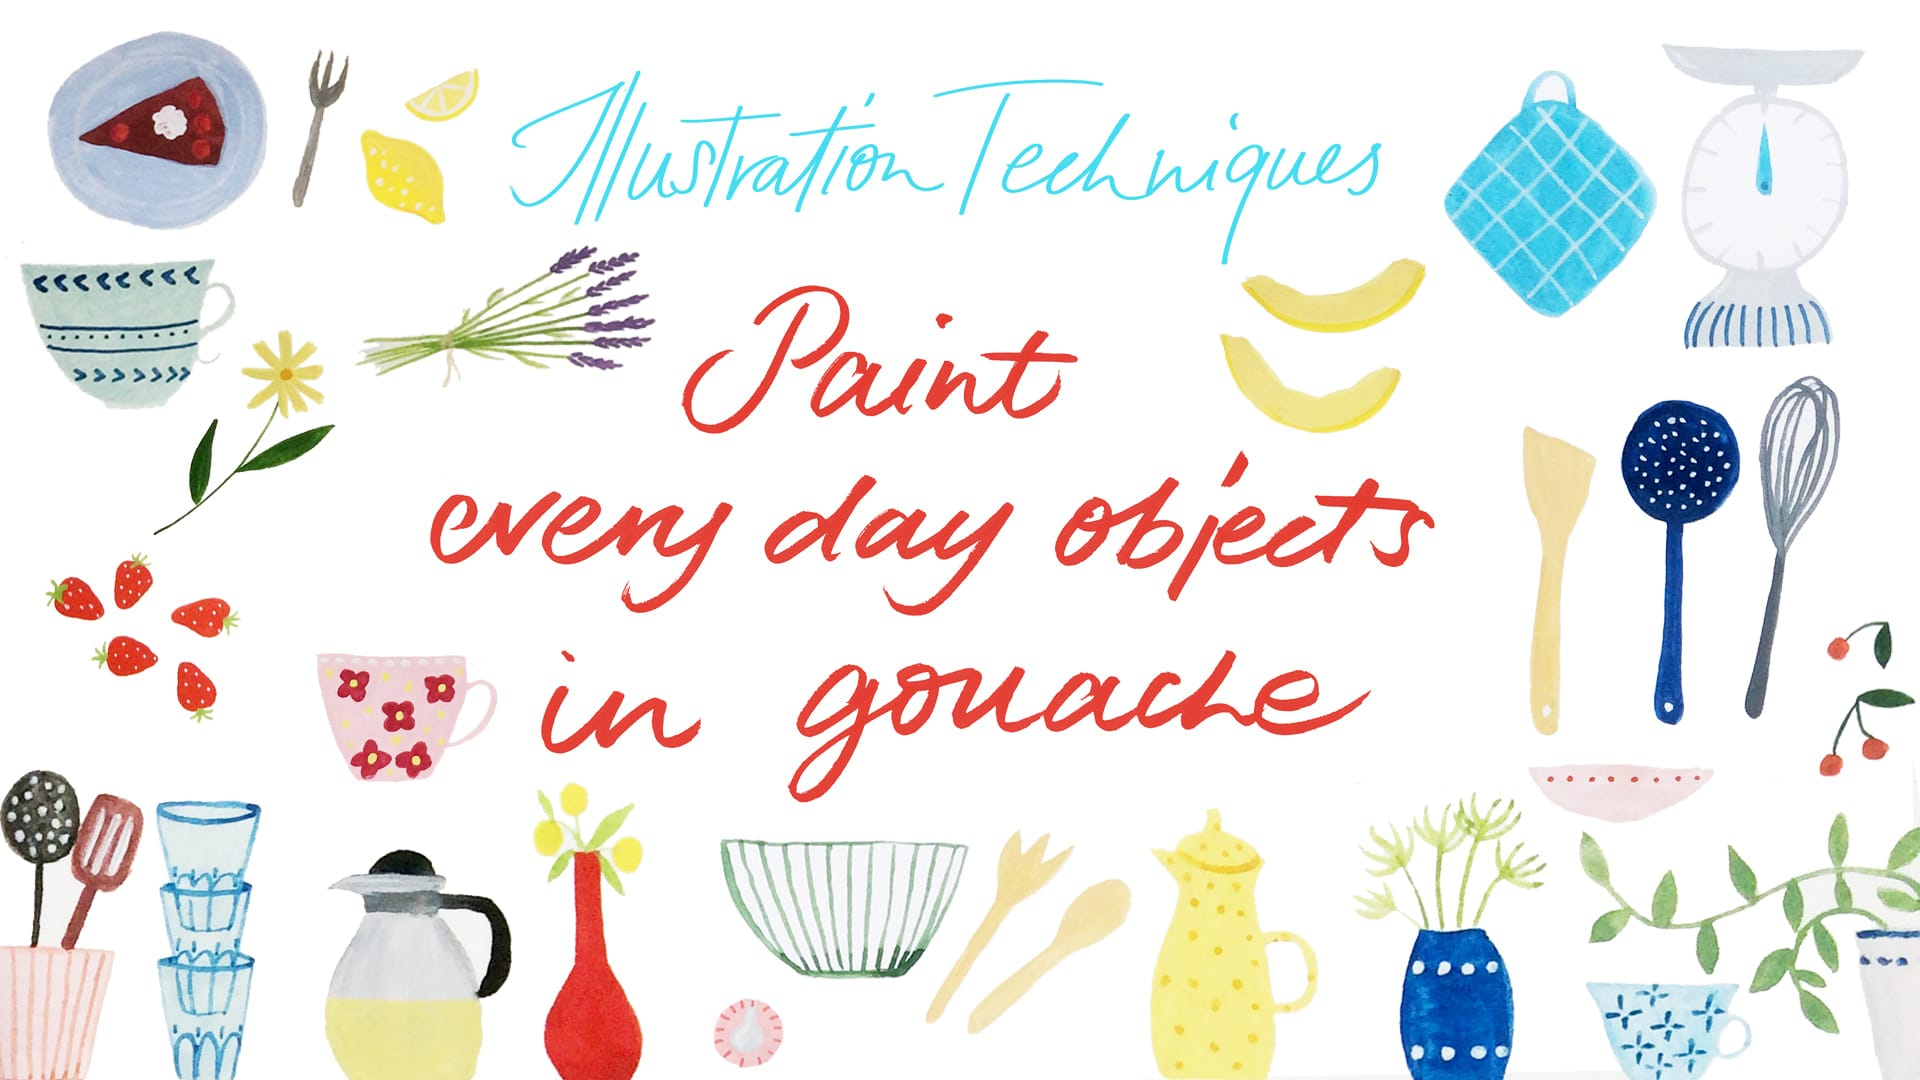 New class about illustration techniques: Paint every day objects in gouache